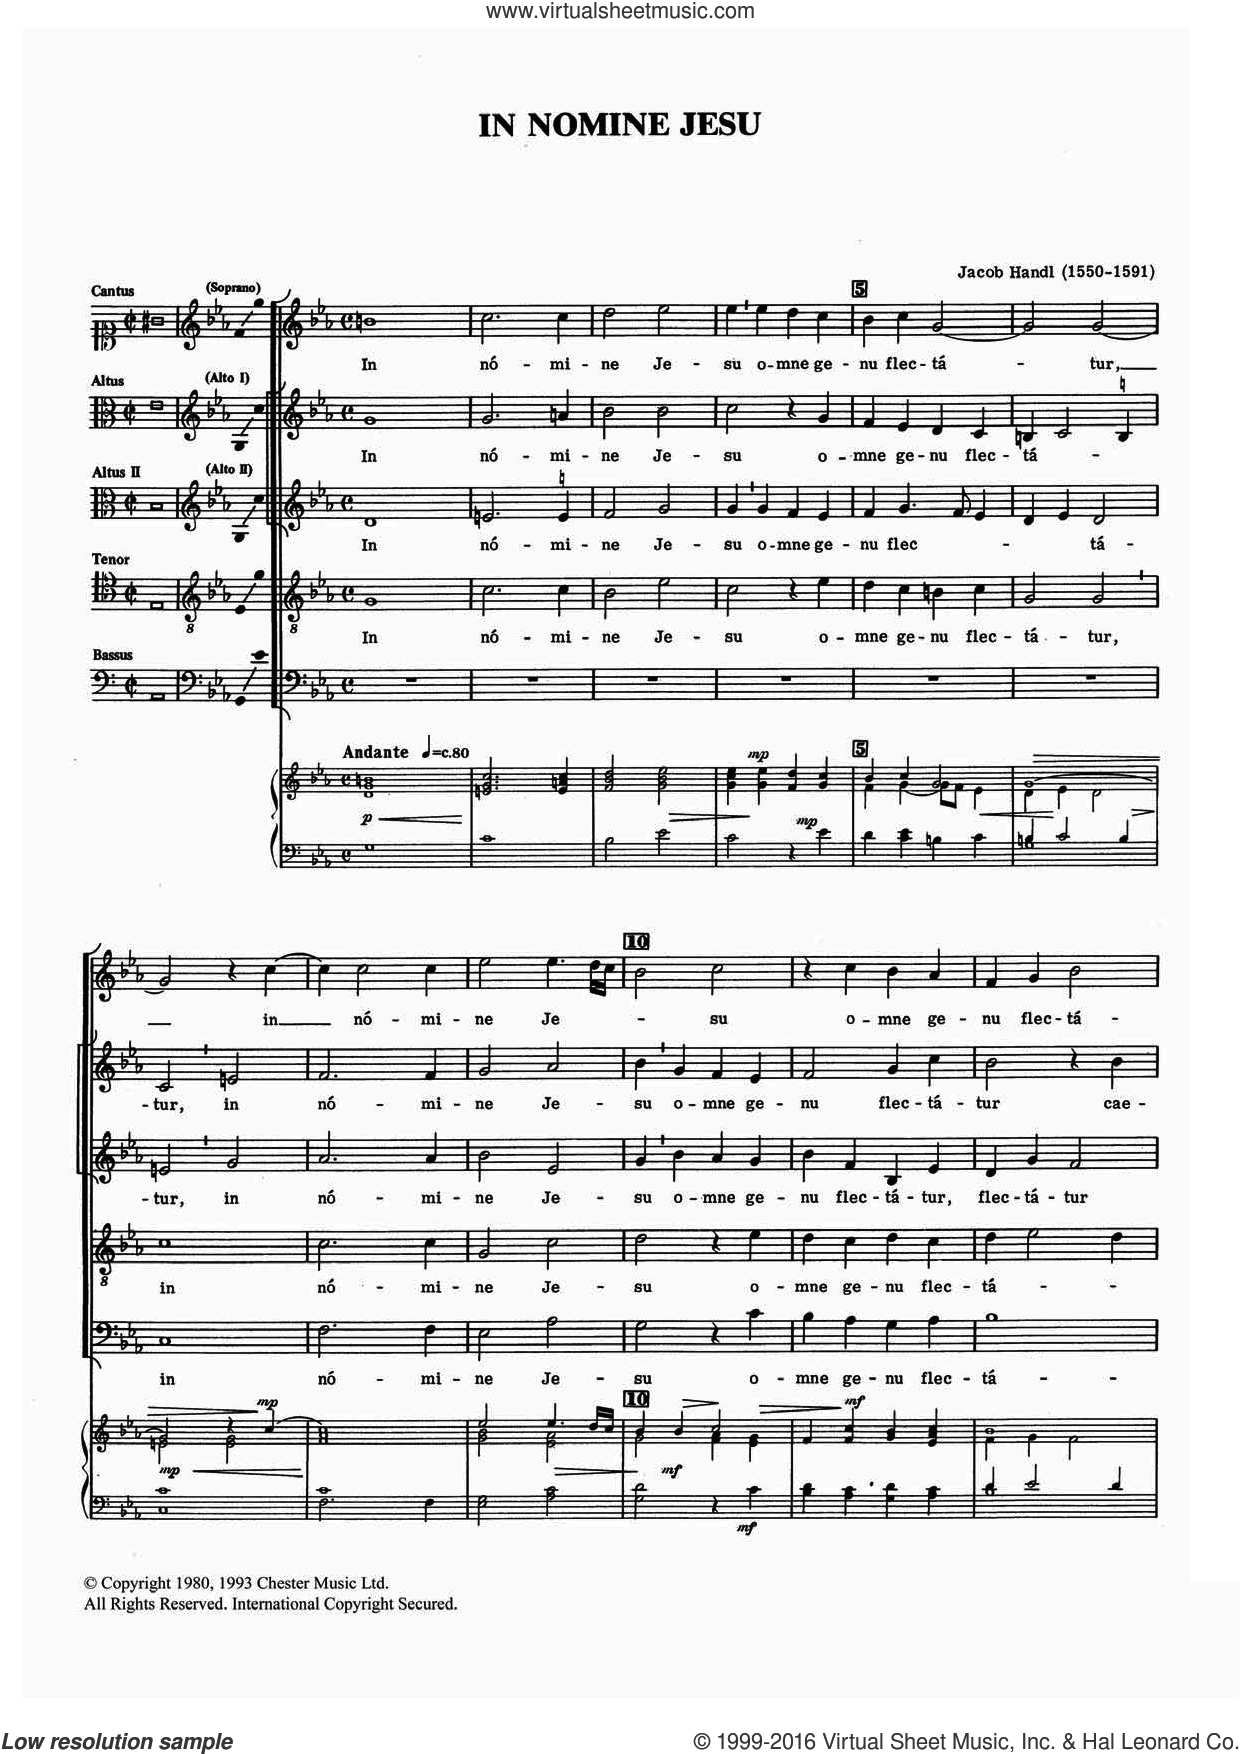 In Nomine Jesu sheet music for voice, piano or guitar by Jacob Handl. Score Image Preview.